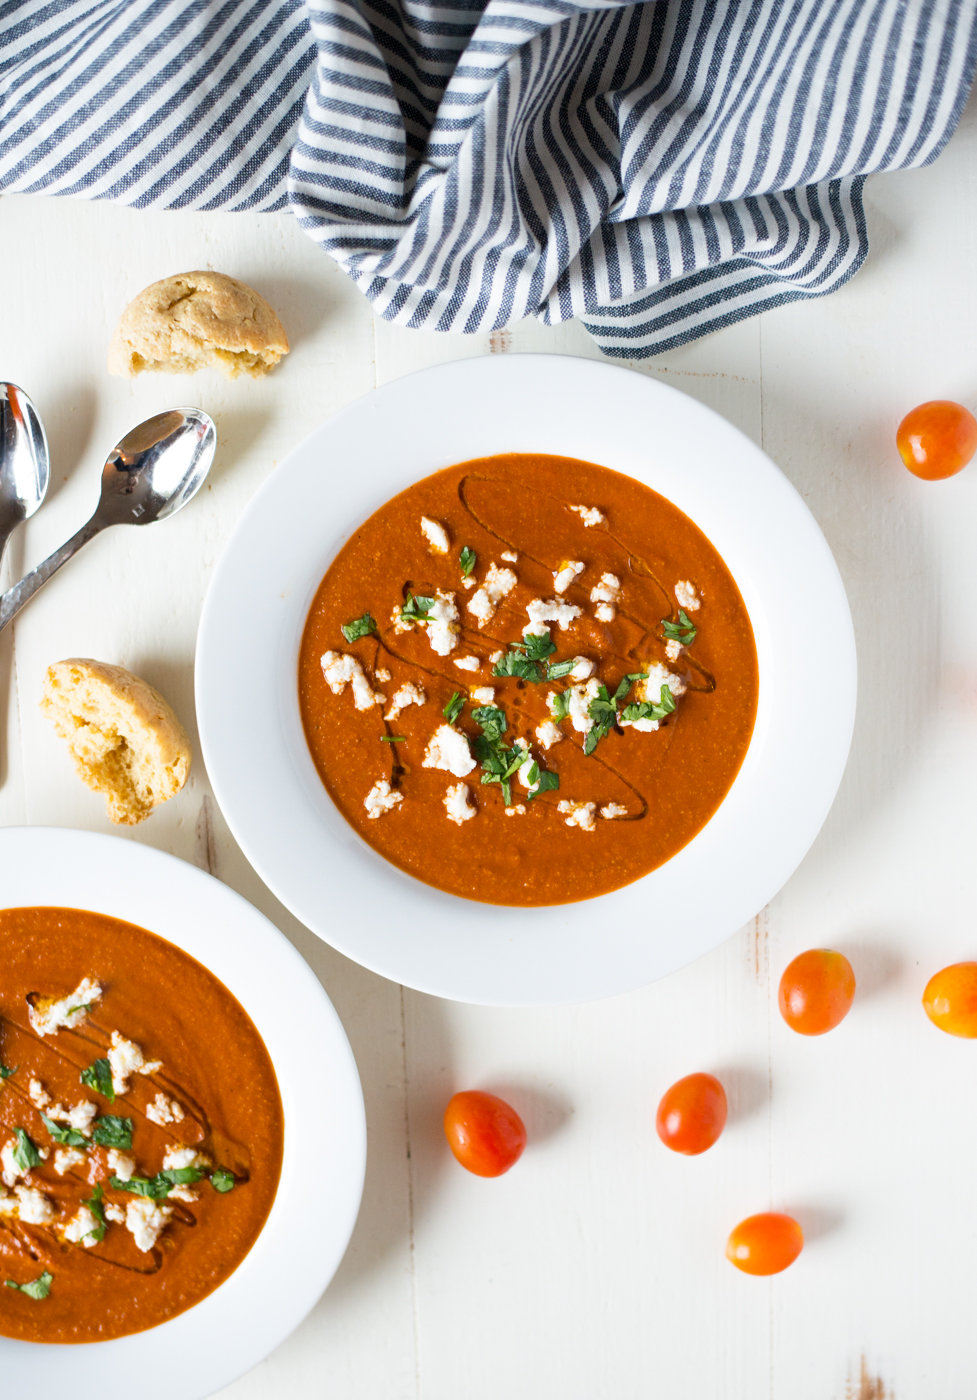 Instant Pot Creamy Tomato Soup comes together in a matter of minutes and is creamy, dreamy, sweet and savory. Say hello to your new favorite paleo, whole30, vegan soup recipe! #realfoodwholelife #realfoodwholeliferecipe #paleo #paleorecipe #instantpot #whole30 #whole30recipe #pressurecooker #glutenfree #dairyfree #instantpotrecipe #simple #easy #healthy #cleaneating